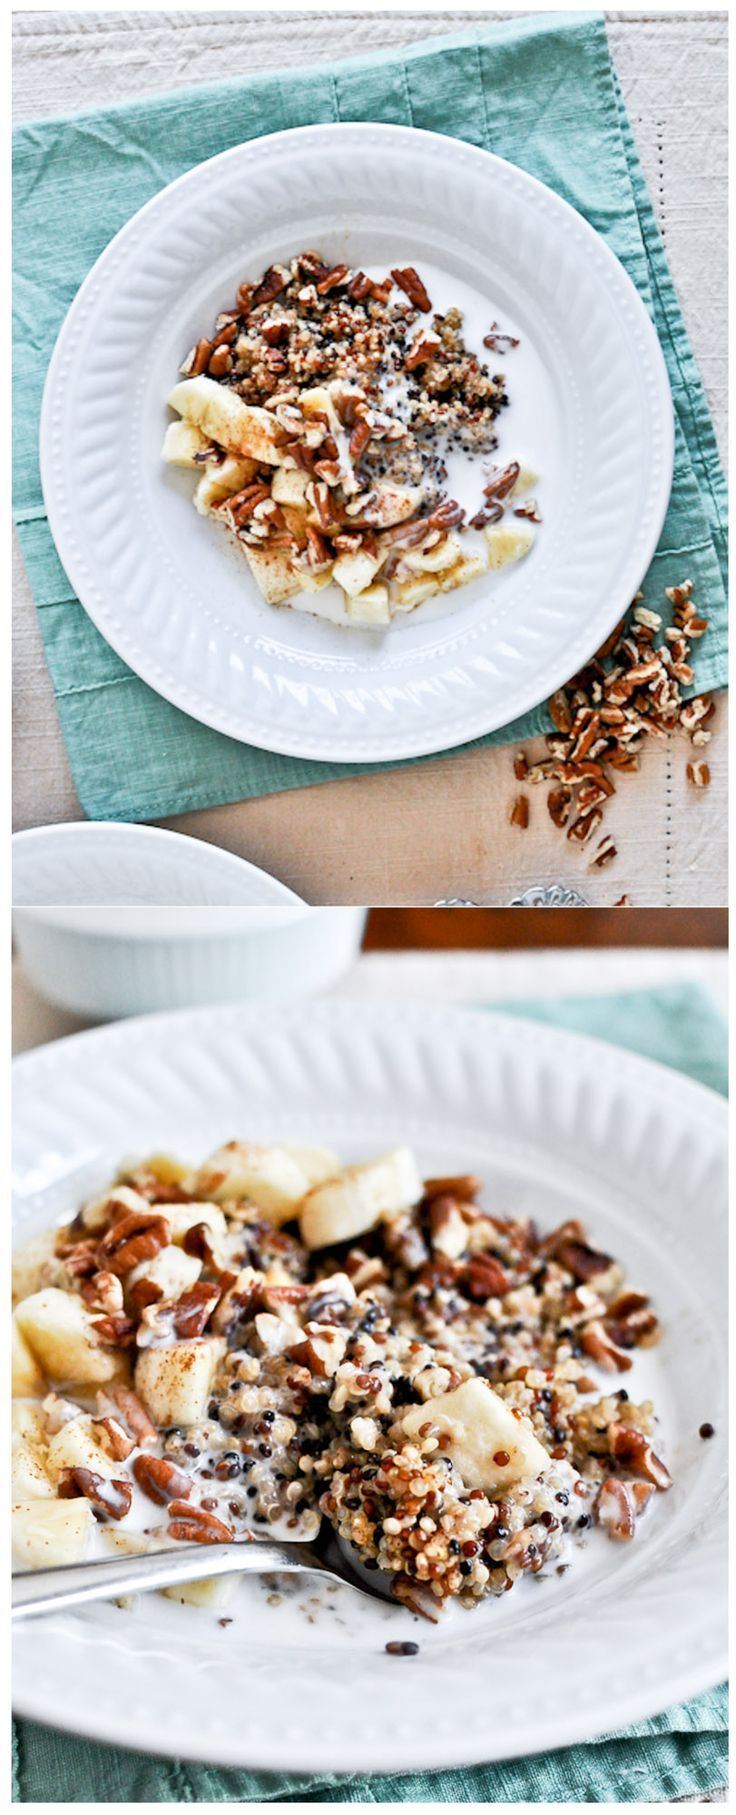 BEST EVER BREAKFAST QUINOA - one of my favorite breakfasts ever by @howsweeteats I howsweeteats.com